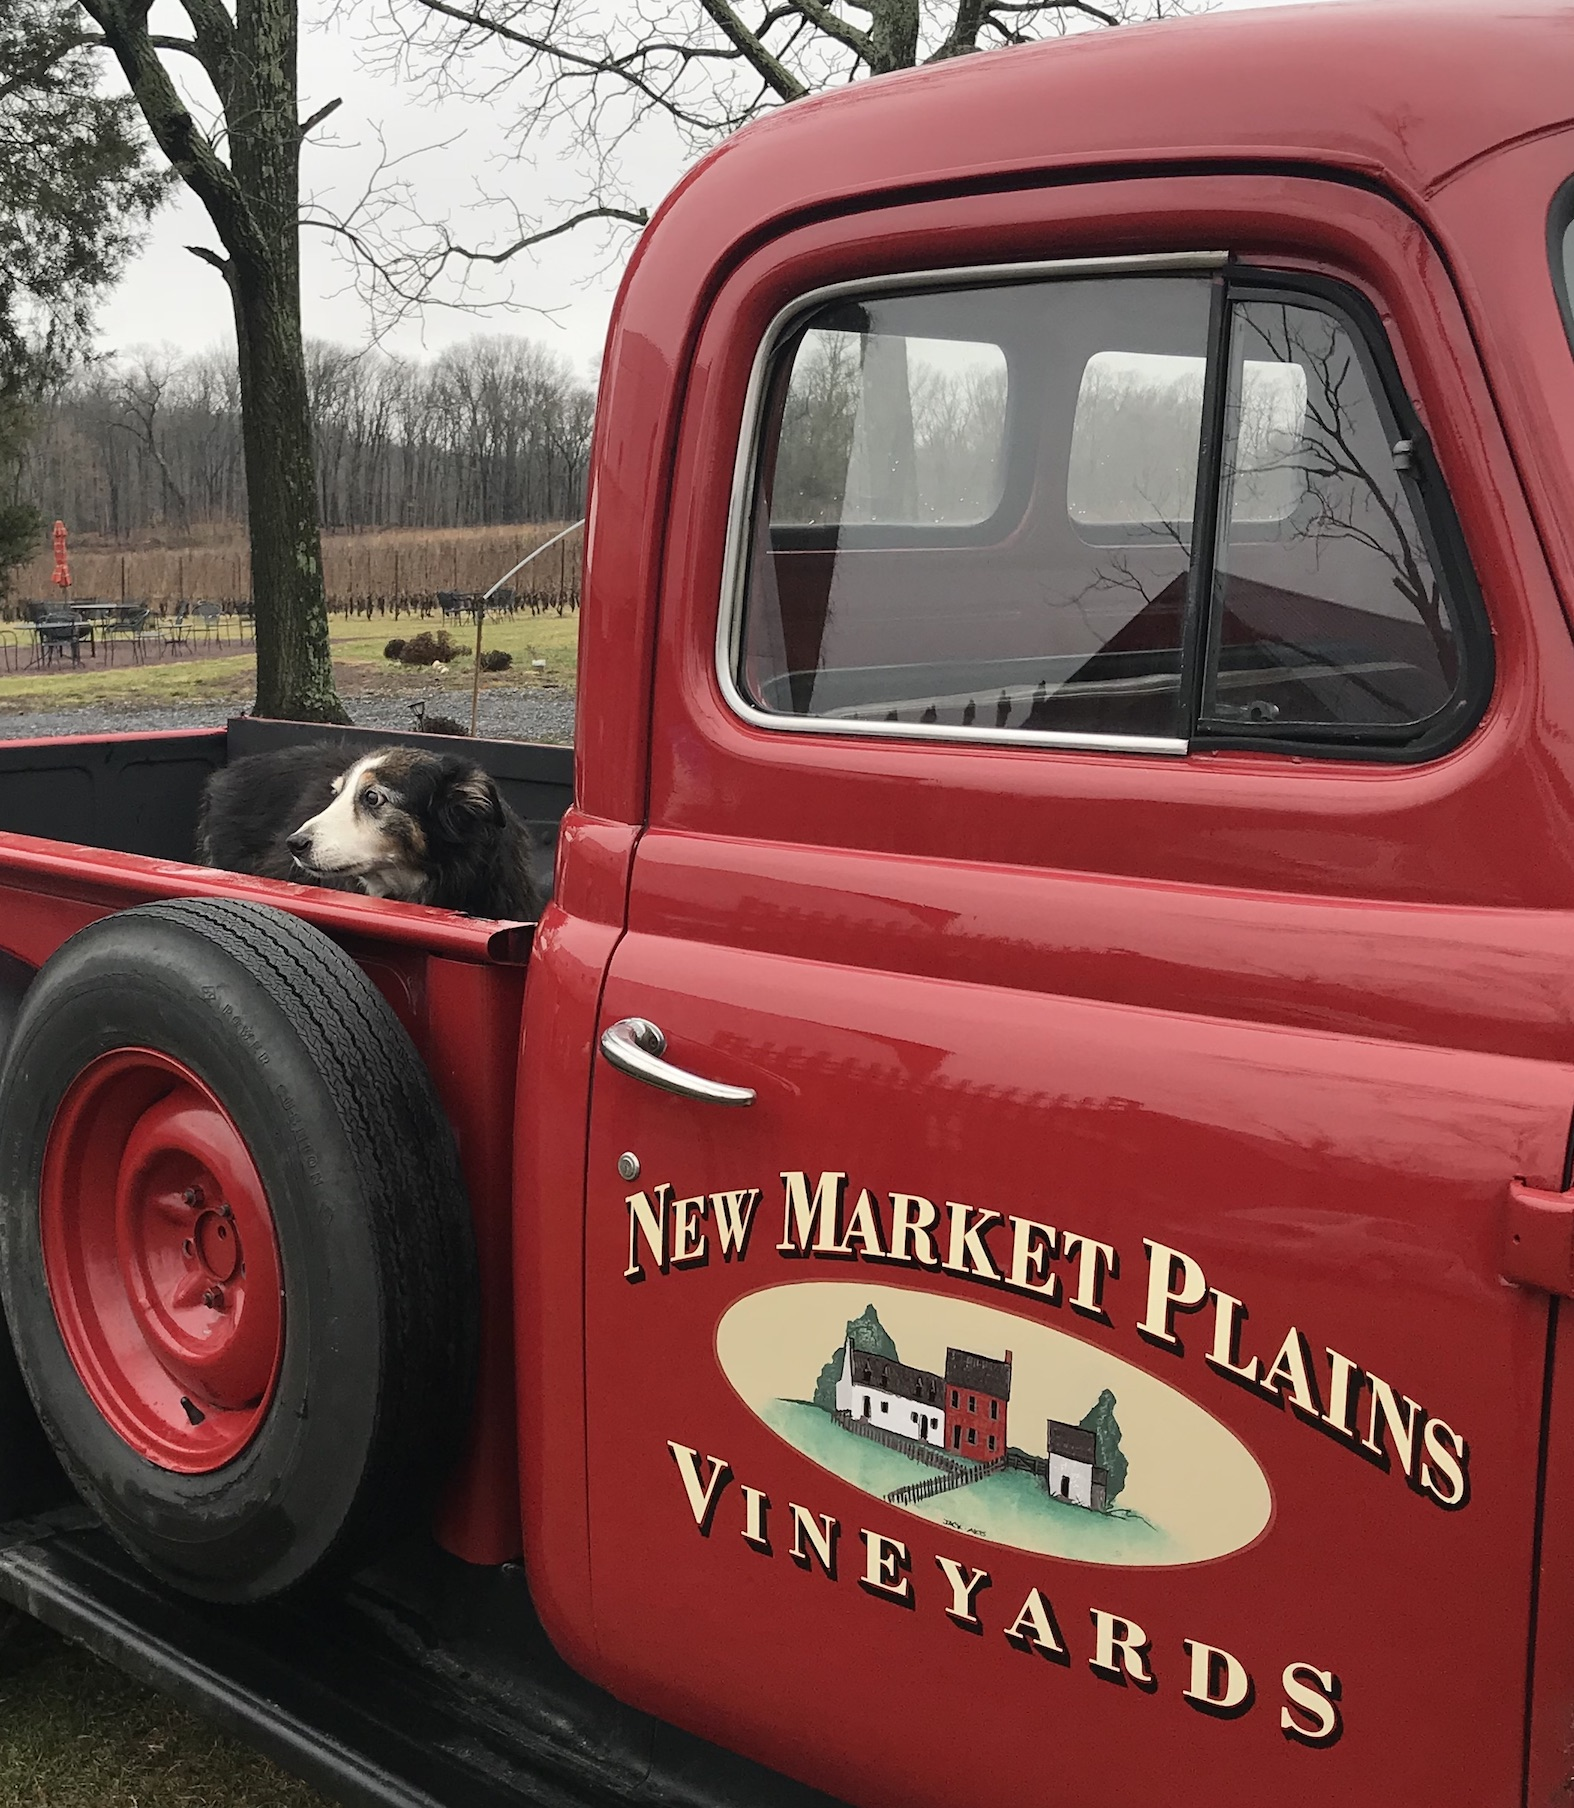 New Market Plains Vineyards